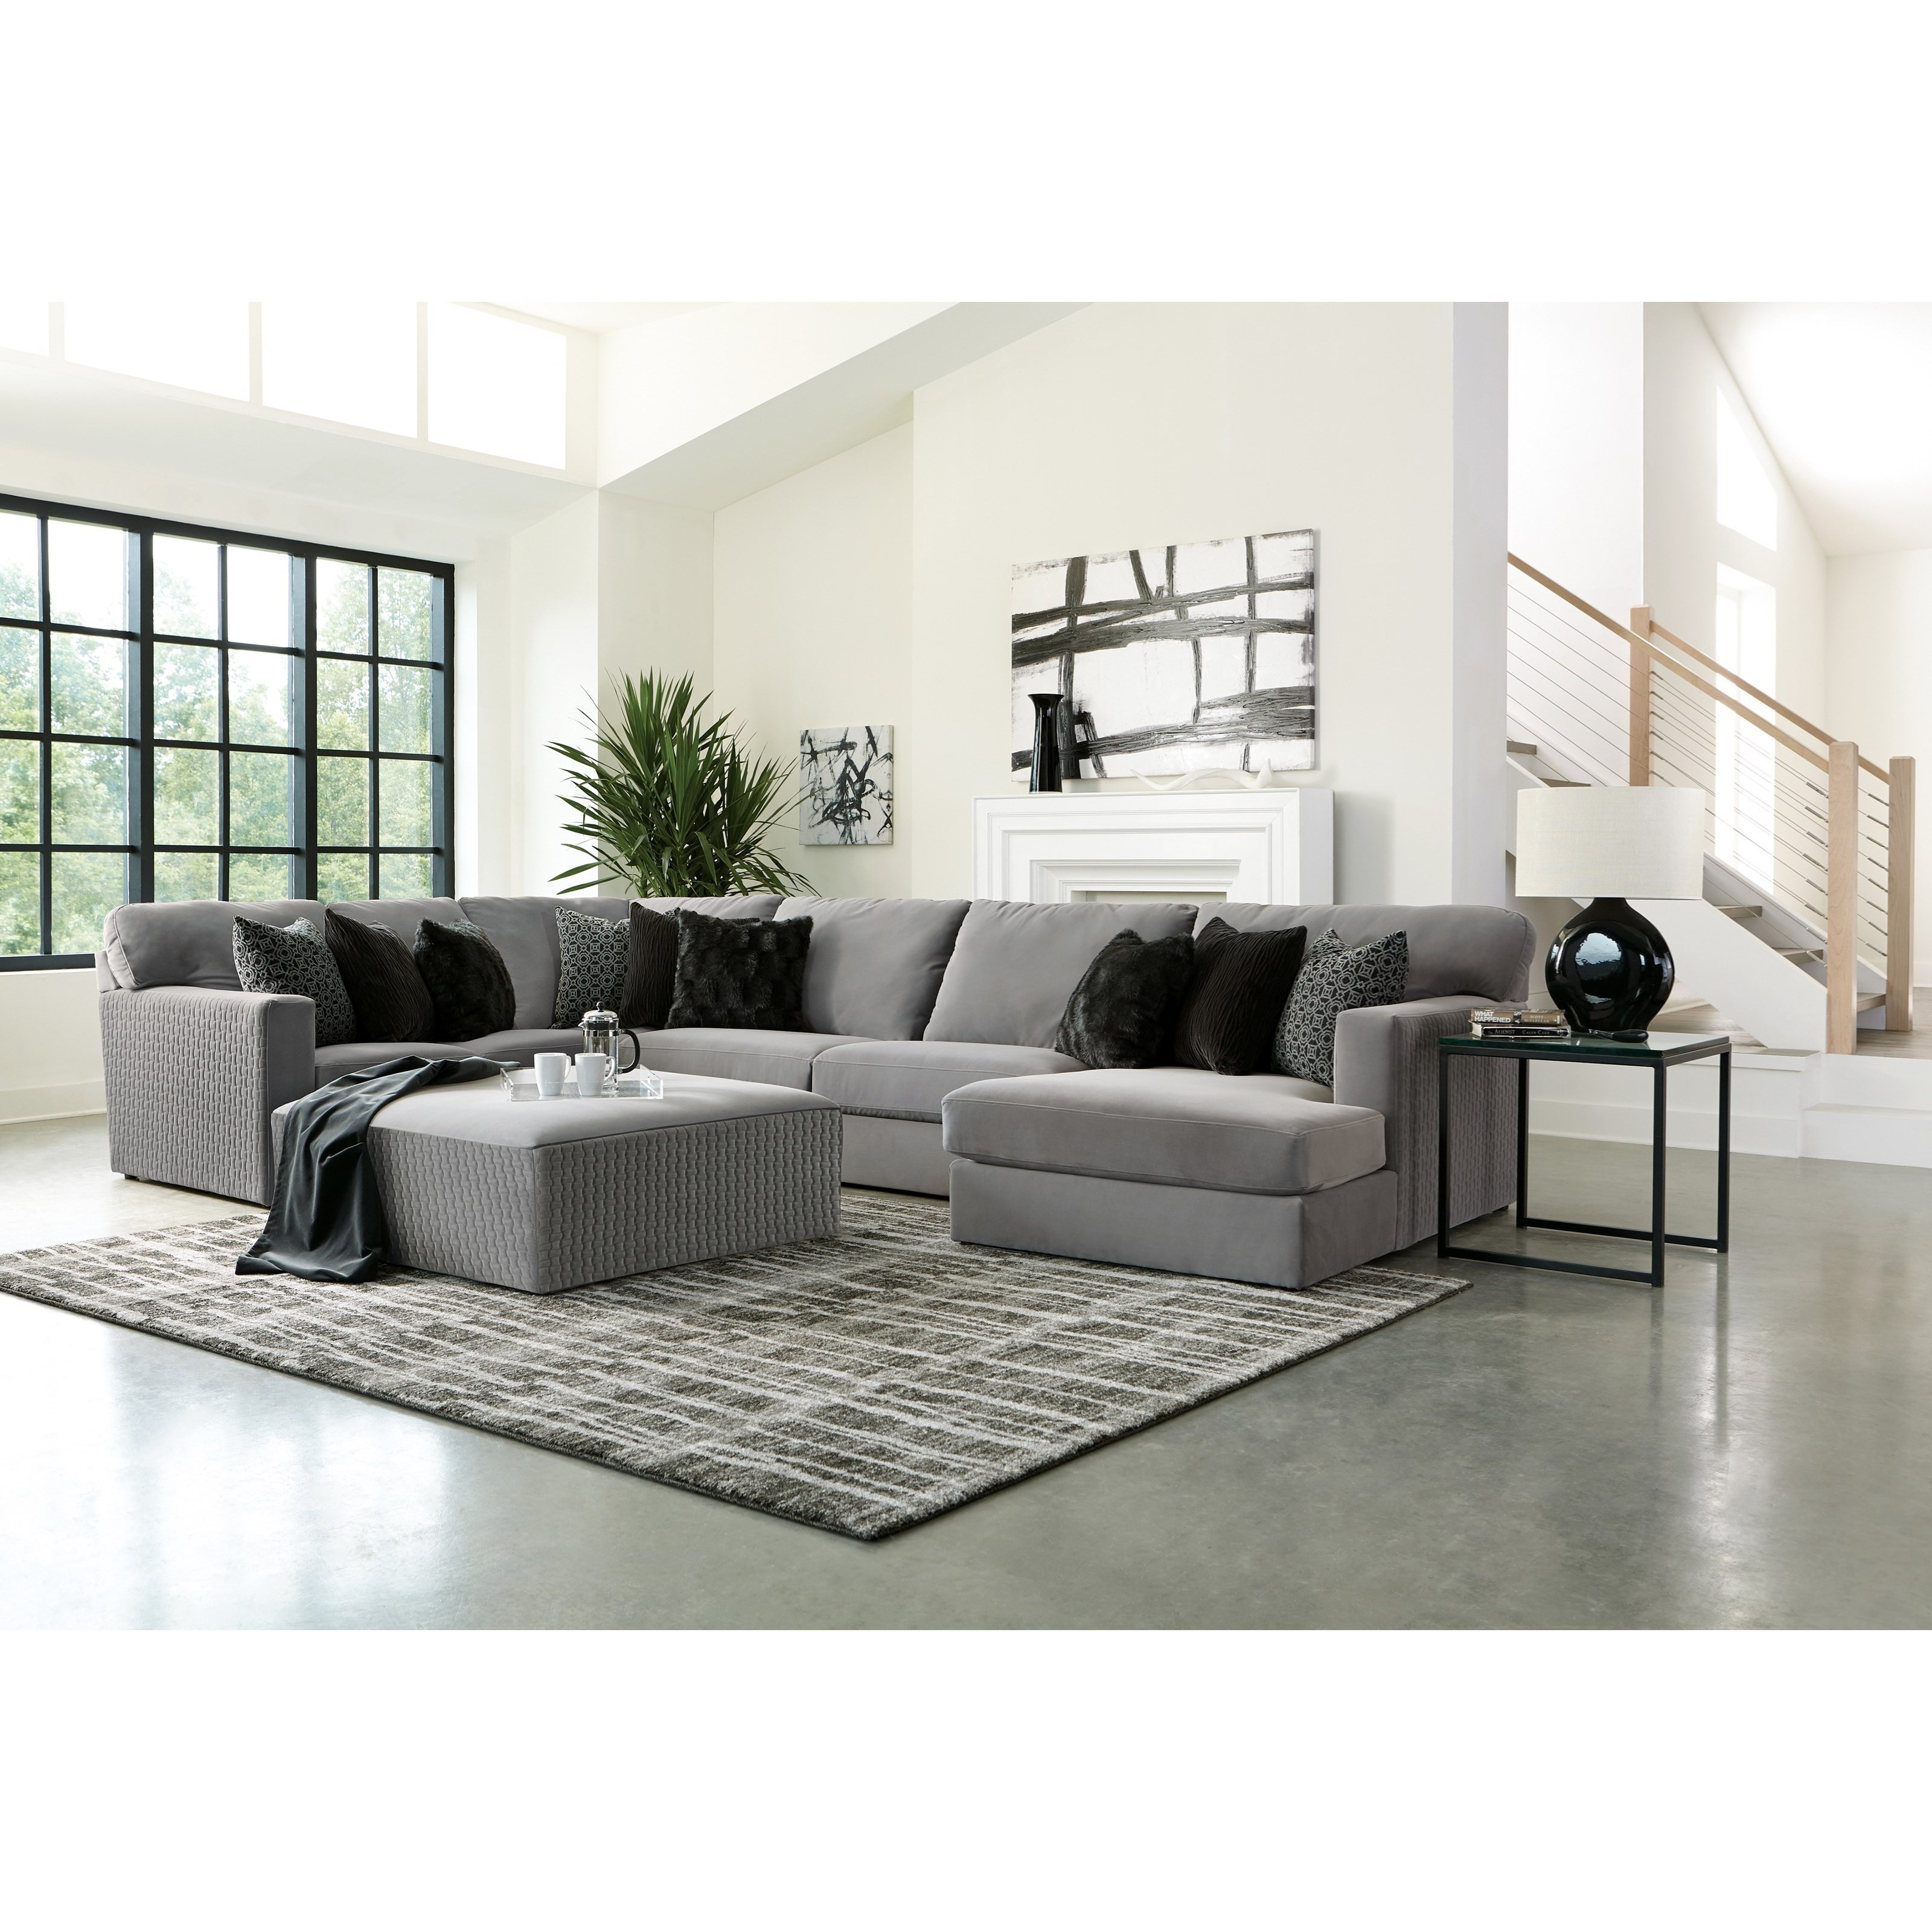 Carlsbad 3-Piece Sectional by Jackson Furniture at Northeast Factory Direct